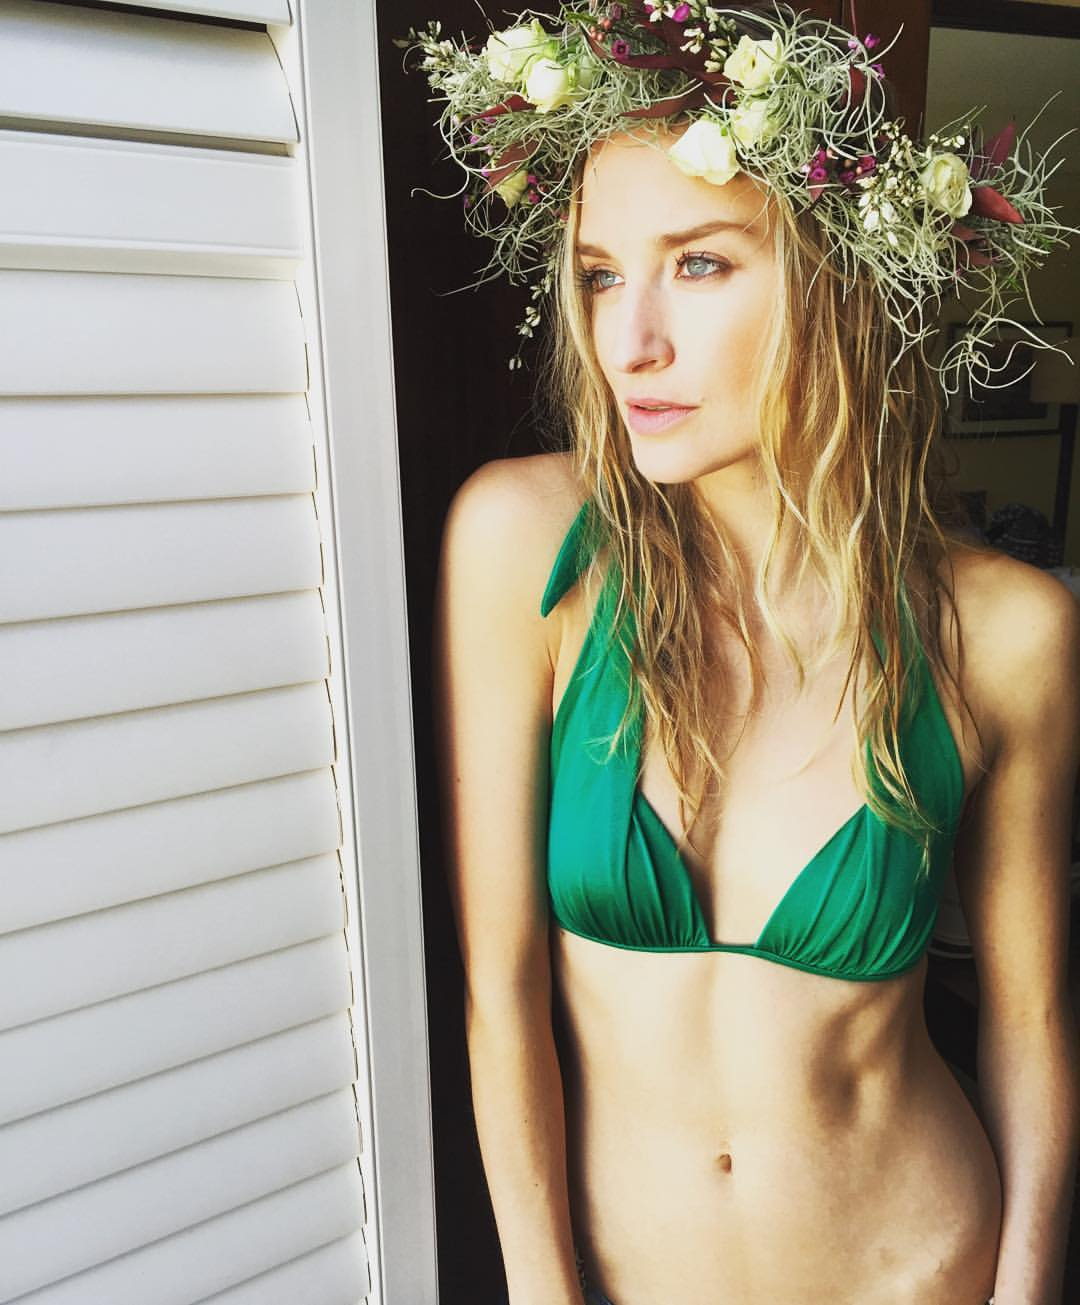 What's that ? A new @twomodelsdo episode tomorrow ? What happens when they are going to throw out your #Hawaiin headpiece .. An impromptu #photoshoot #model #blonde #bikini